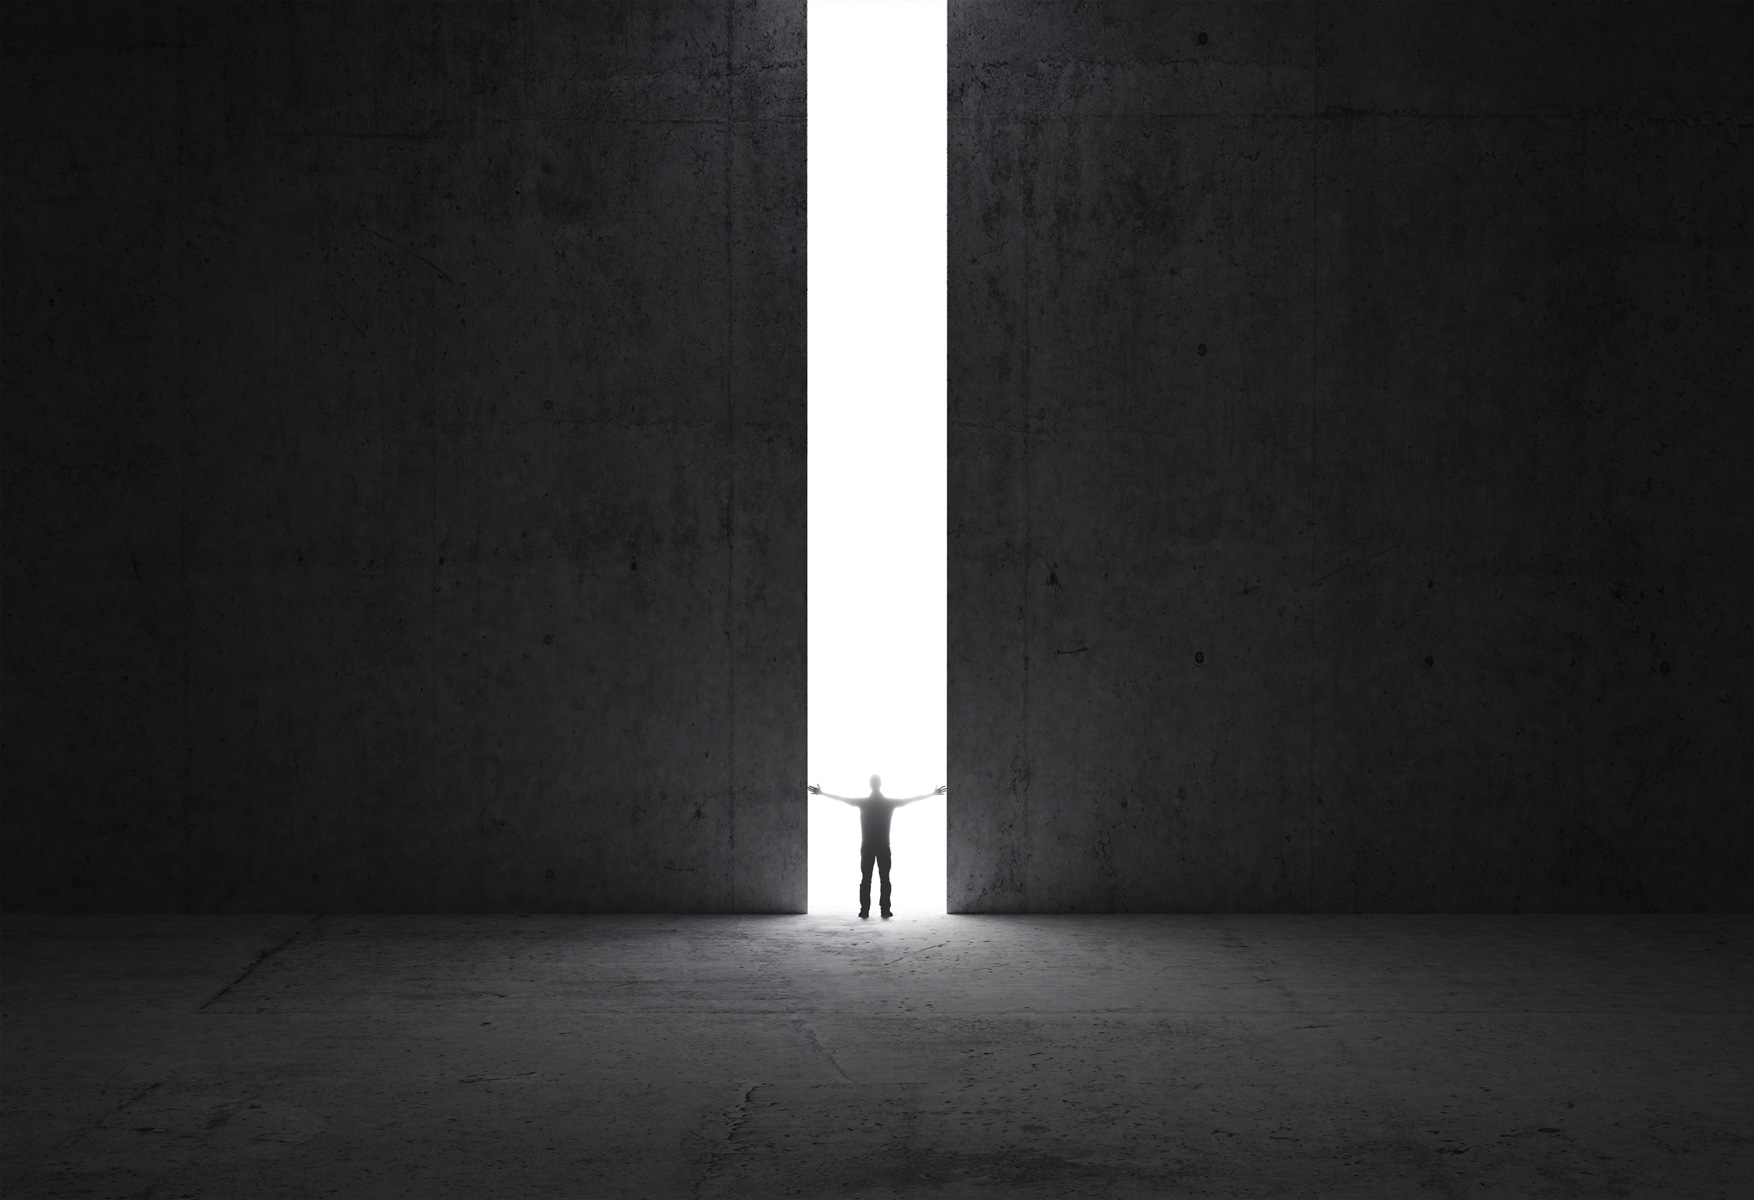 Silhouette of a person in the distance through a large crack of light in a wall